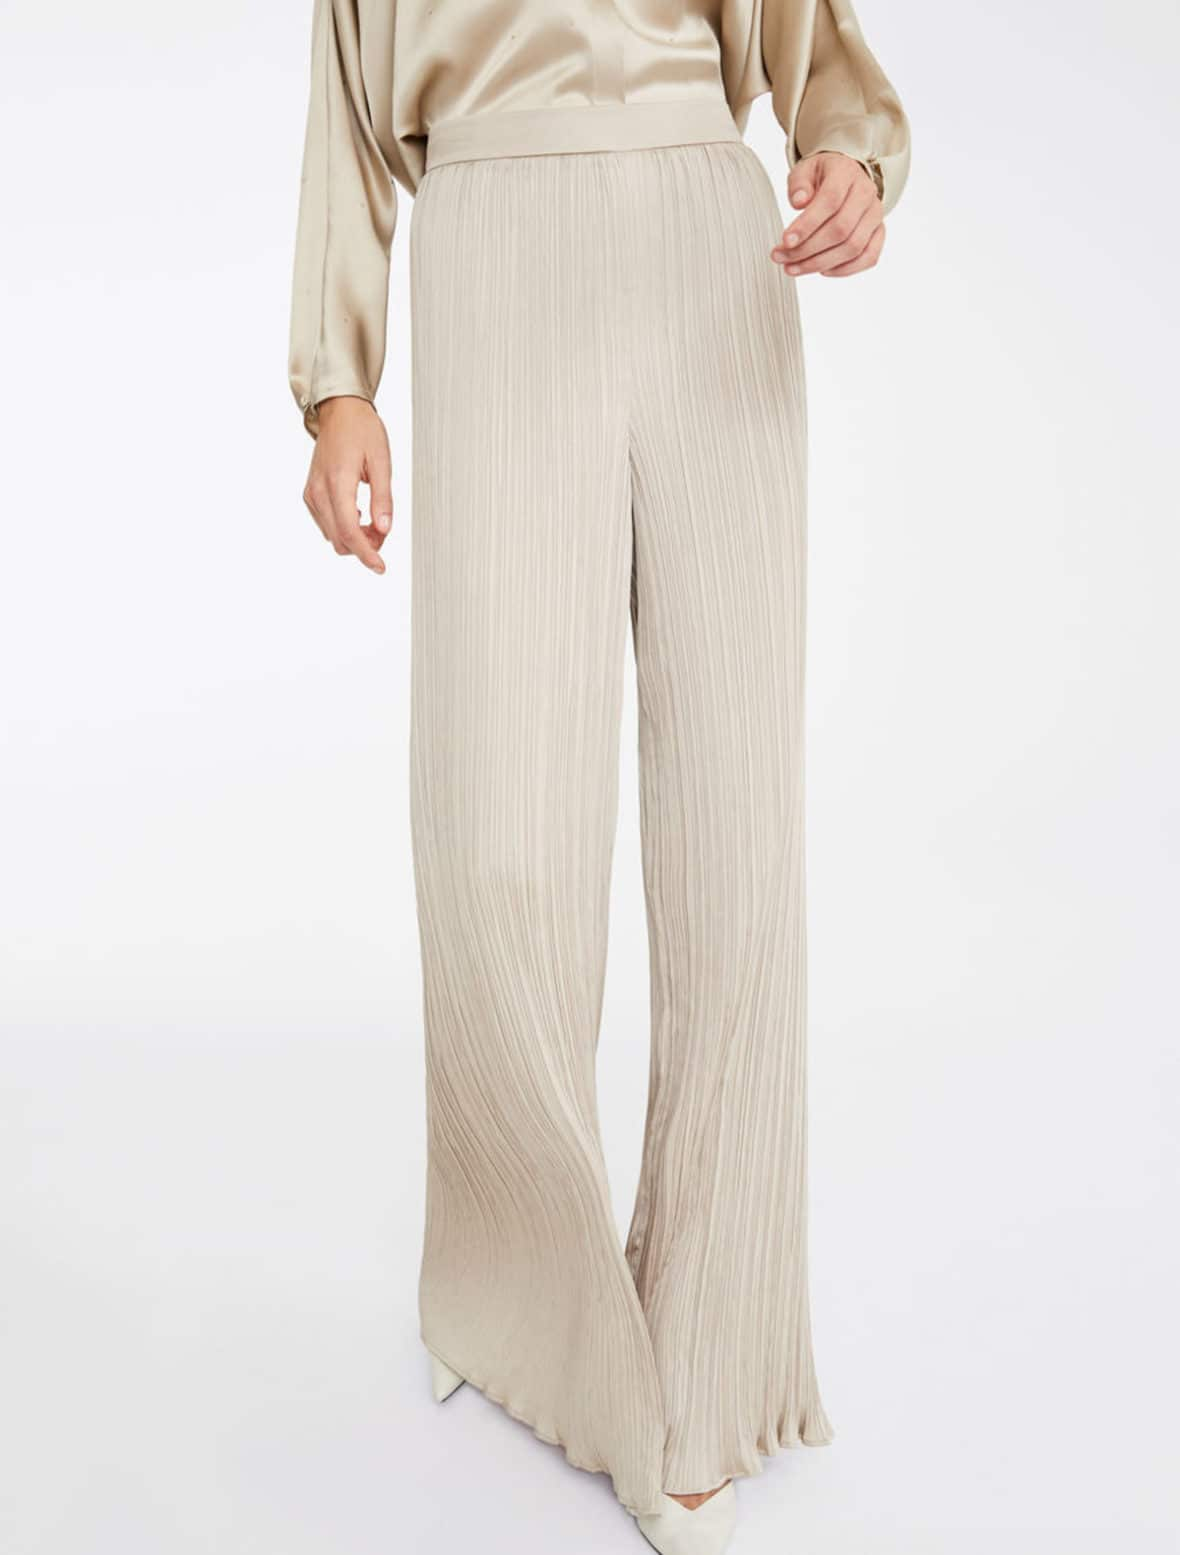 Max Mara pleated pants